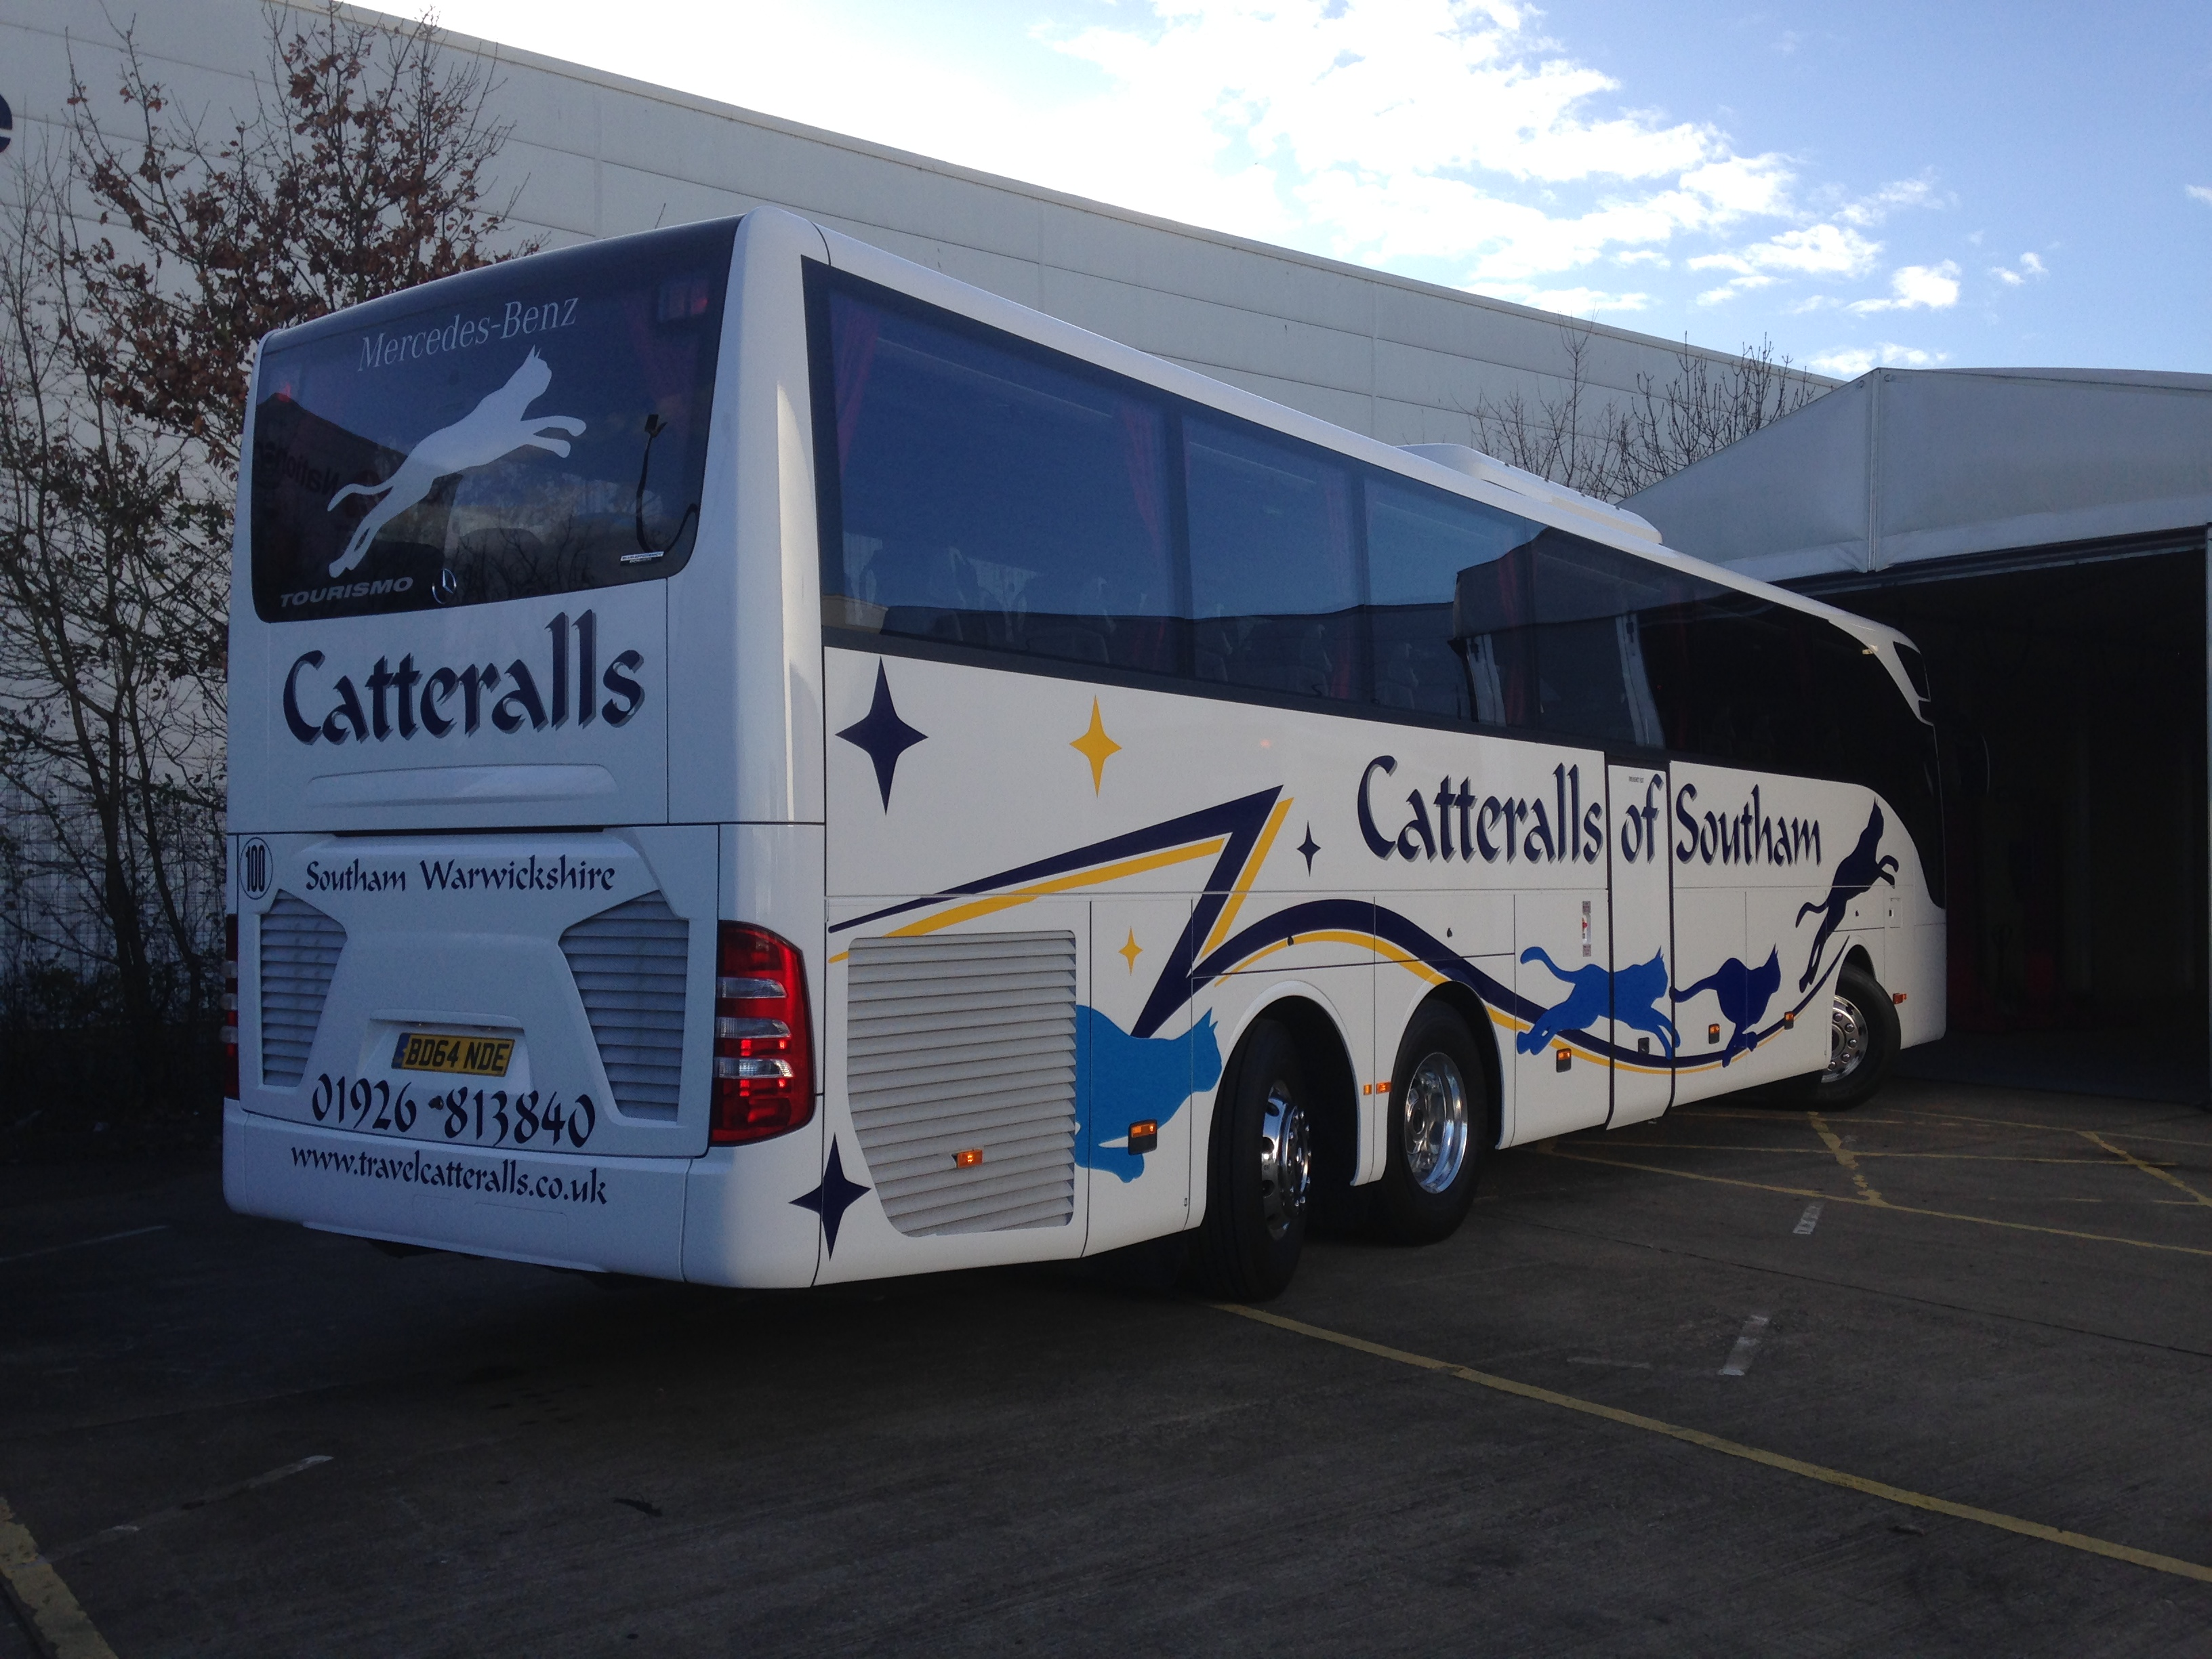 Catteralls Coach graphics